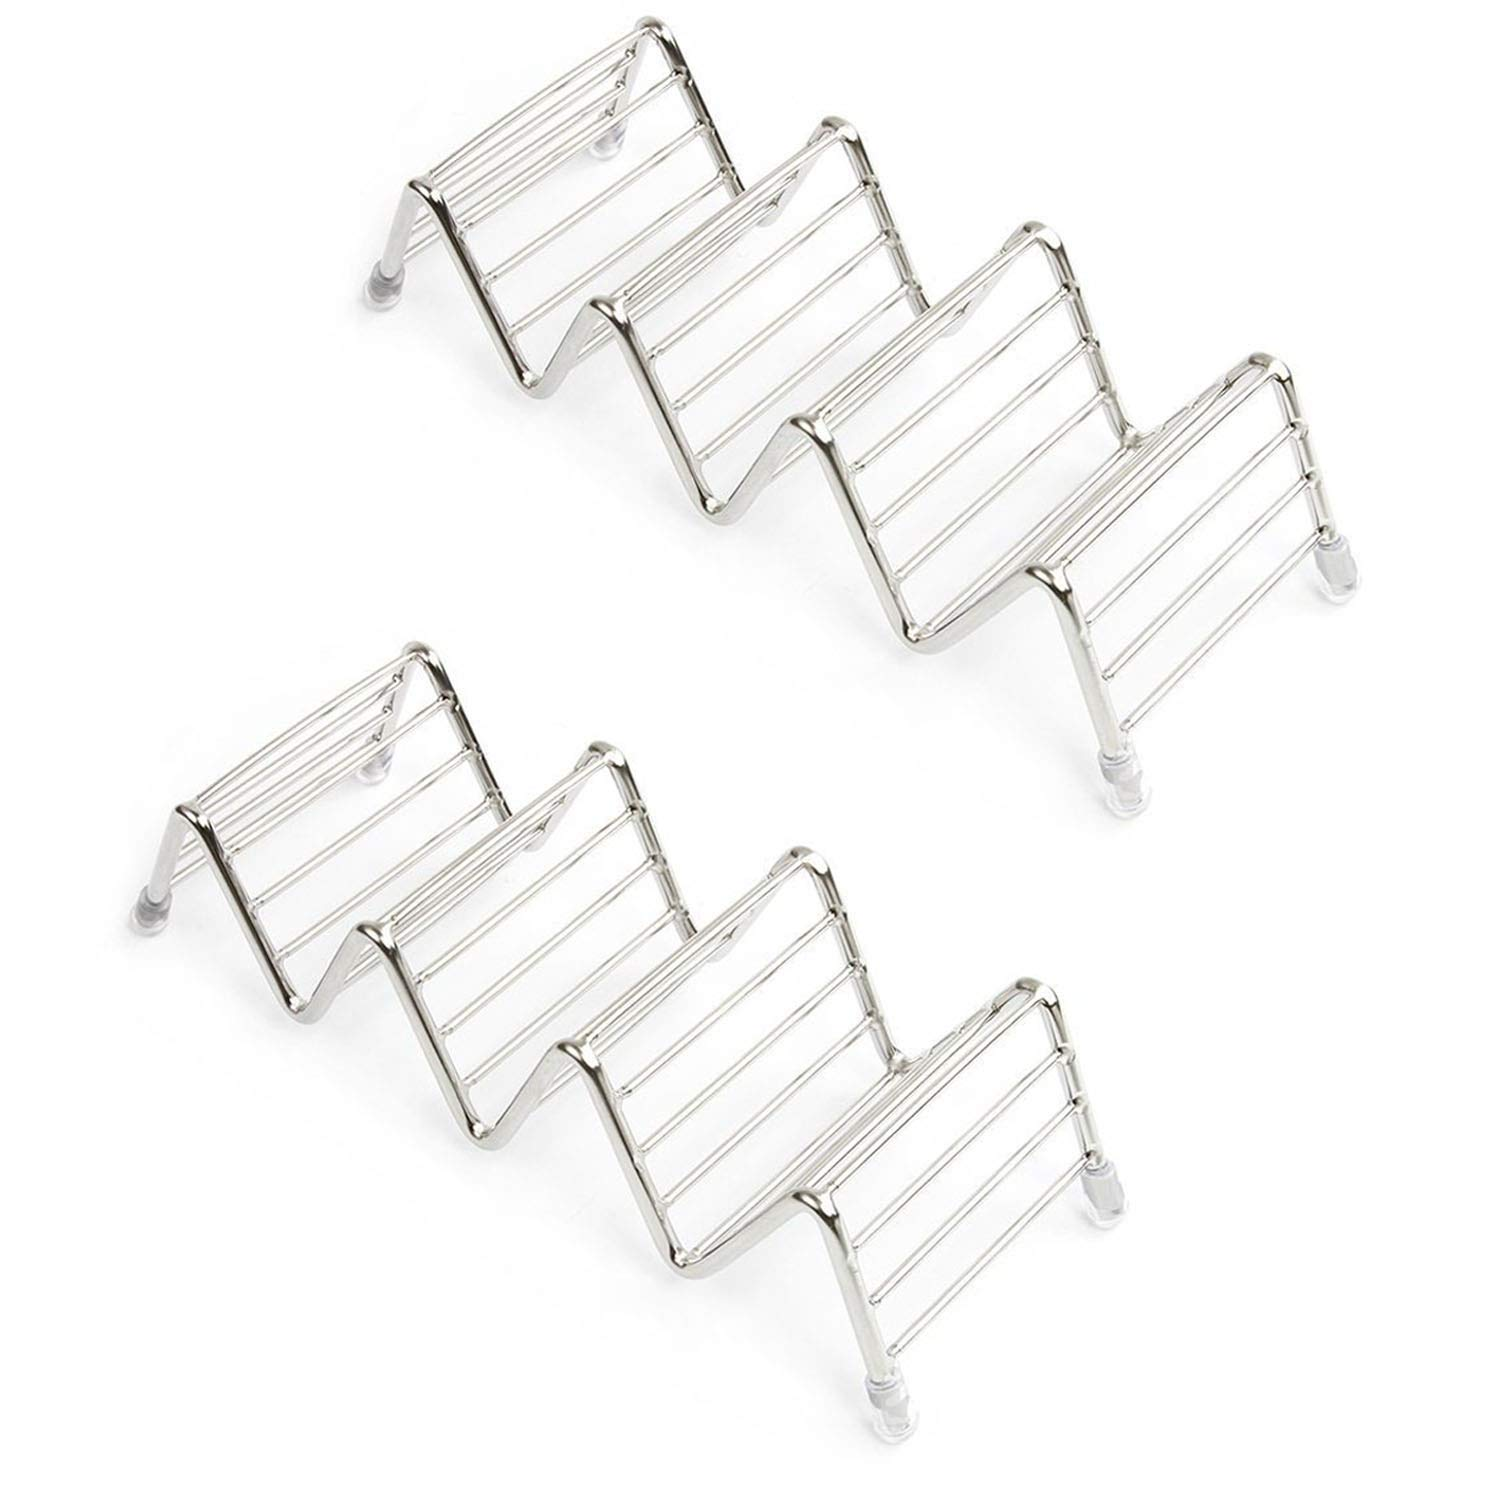 3pcs Taco Shell Holder Tortilla Stand Rack Stainless Tray Holds 4-5 Tacos